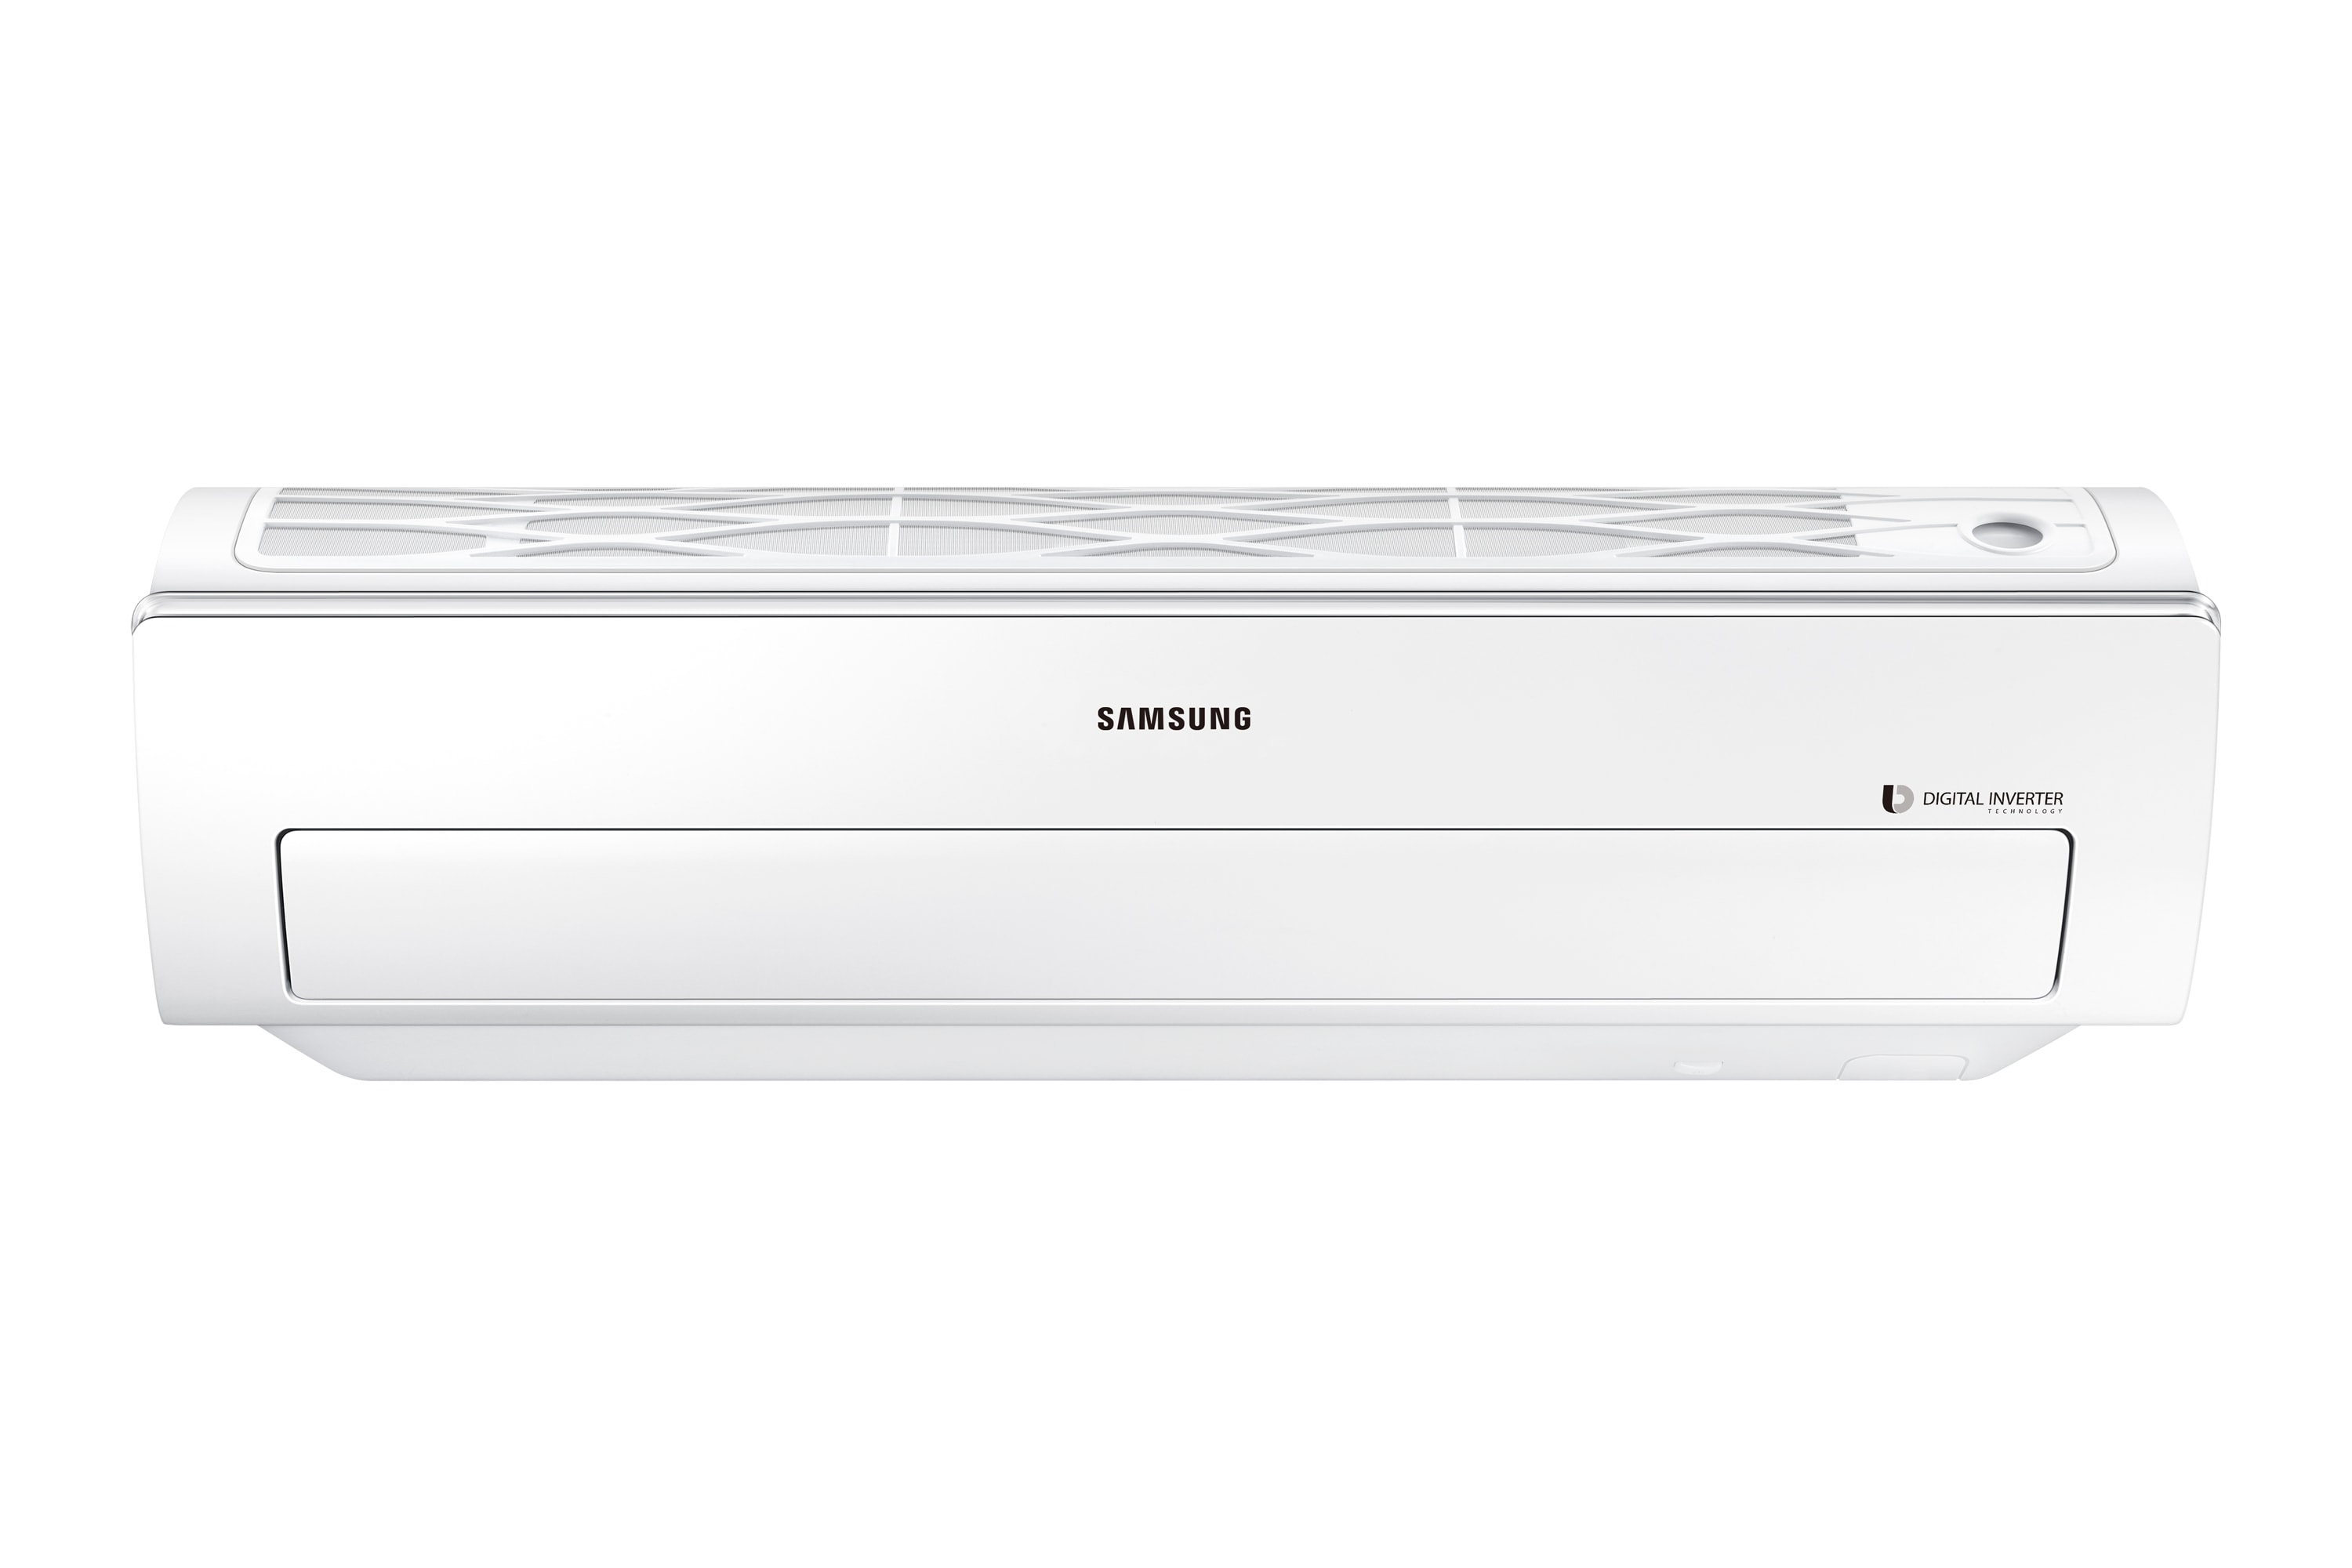 AR5500 Wall-mount AC with Faster Cooling, 9000 BTU/h